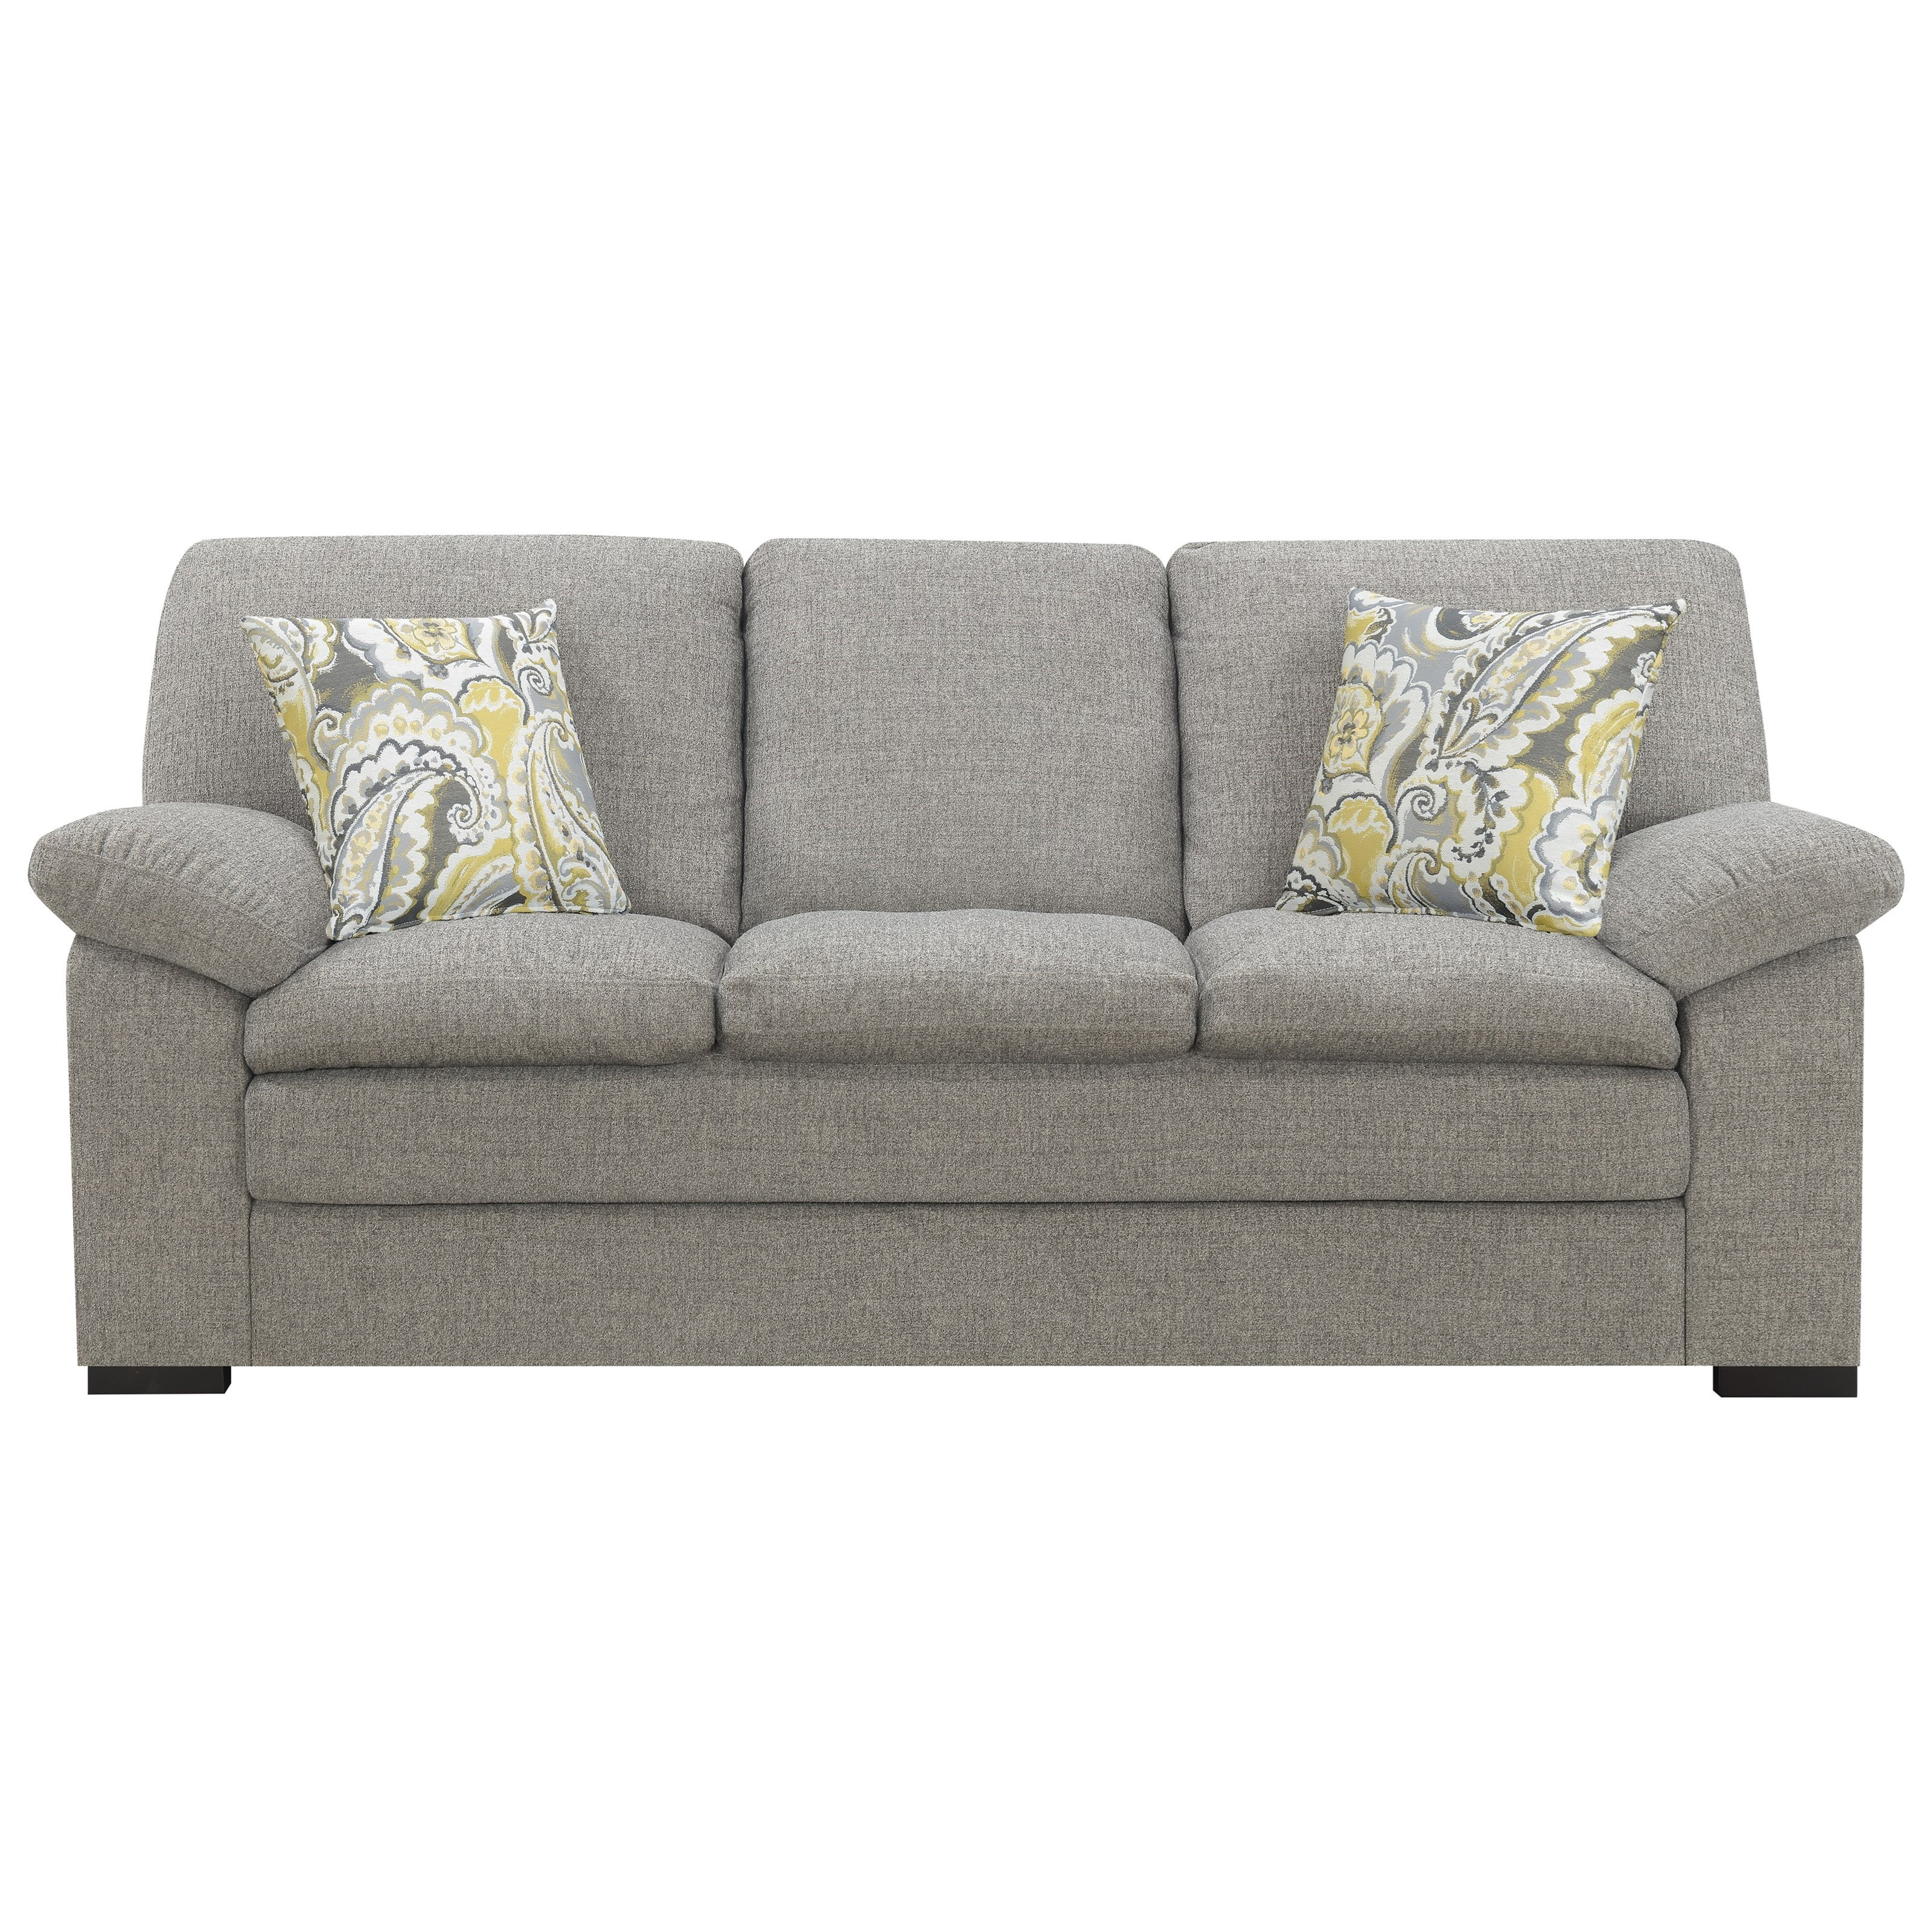 Grandview Sofa with 2 Accent Pillows by Emerald at Northeast Factory Direct